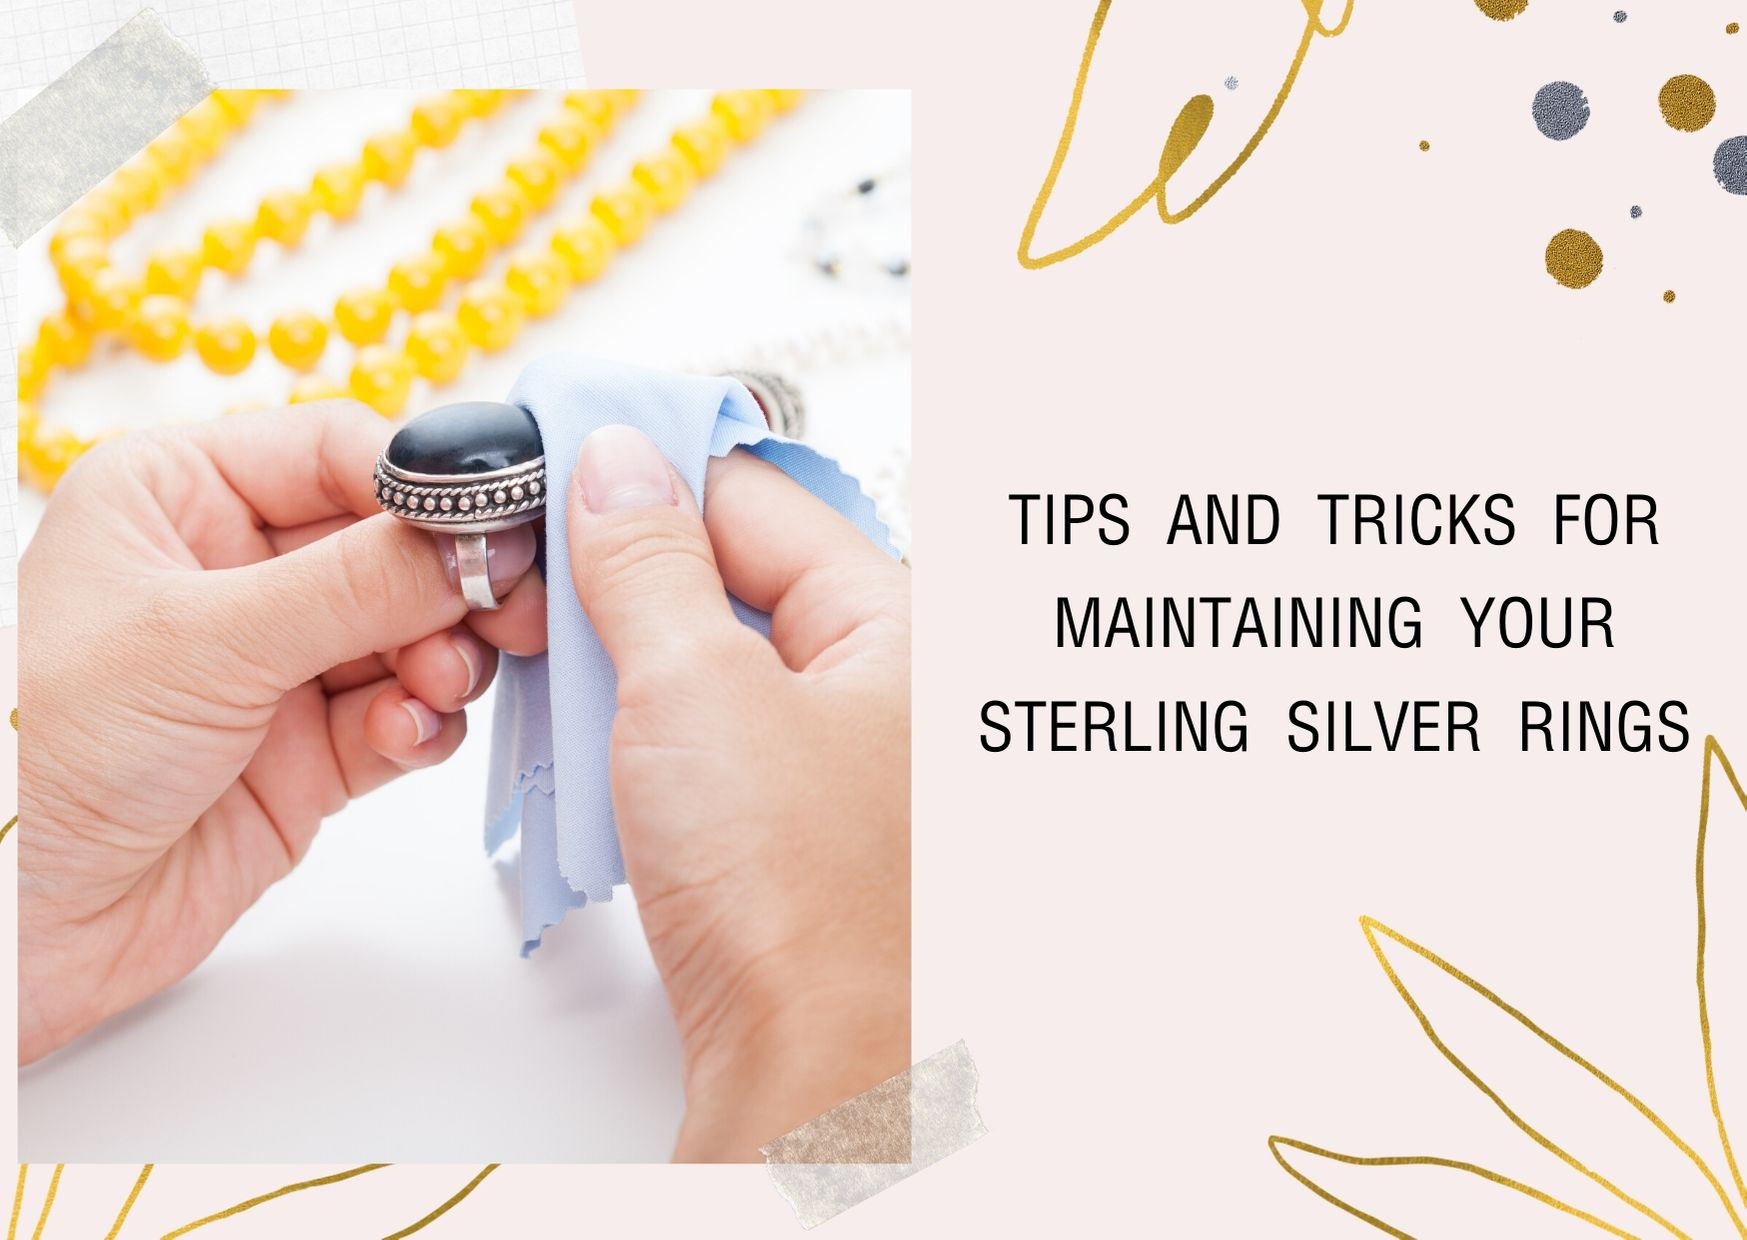 Tips and tricks for maintaining your sterling silver rings